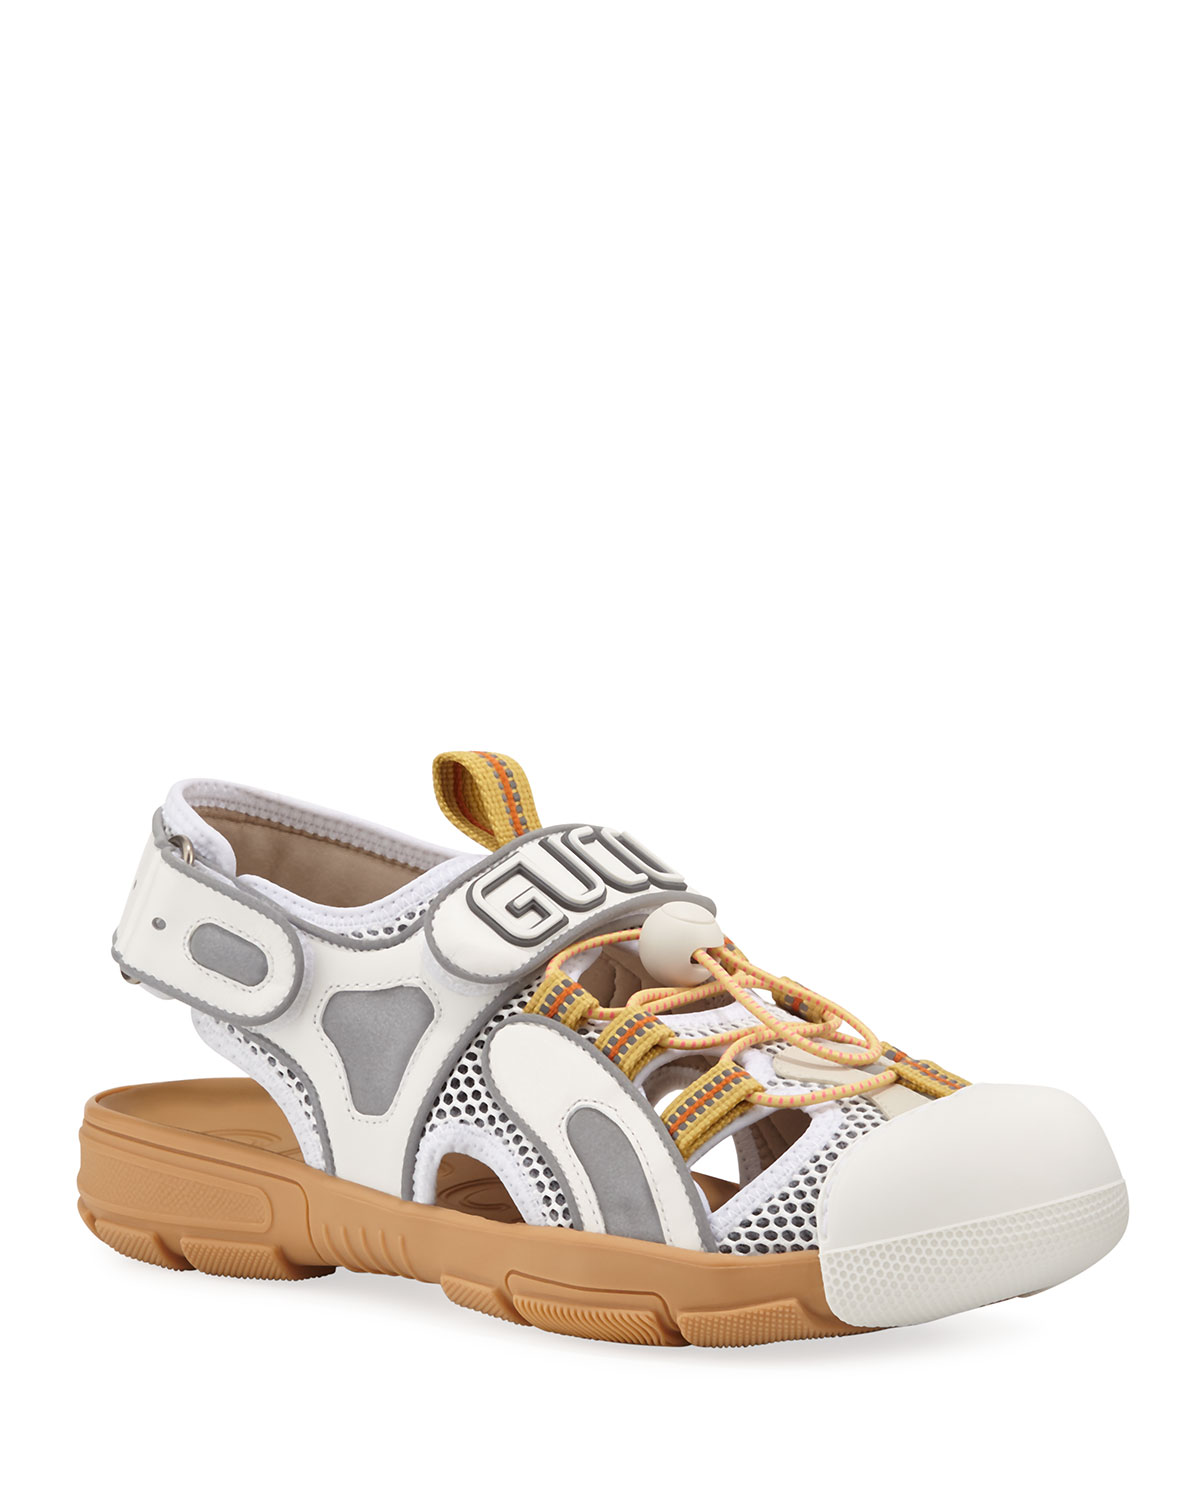 4805dad3d87 Tinsel Sneaker-Style Sandals